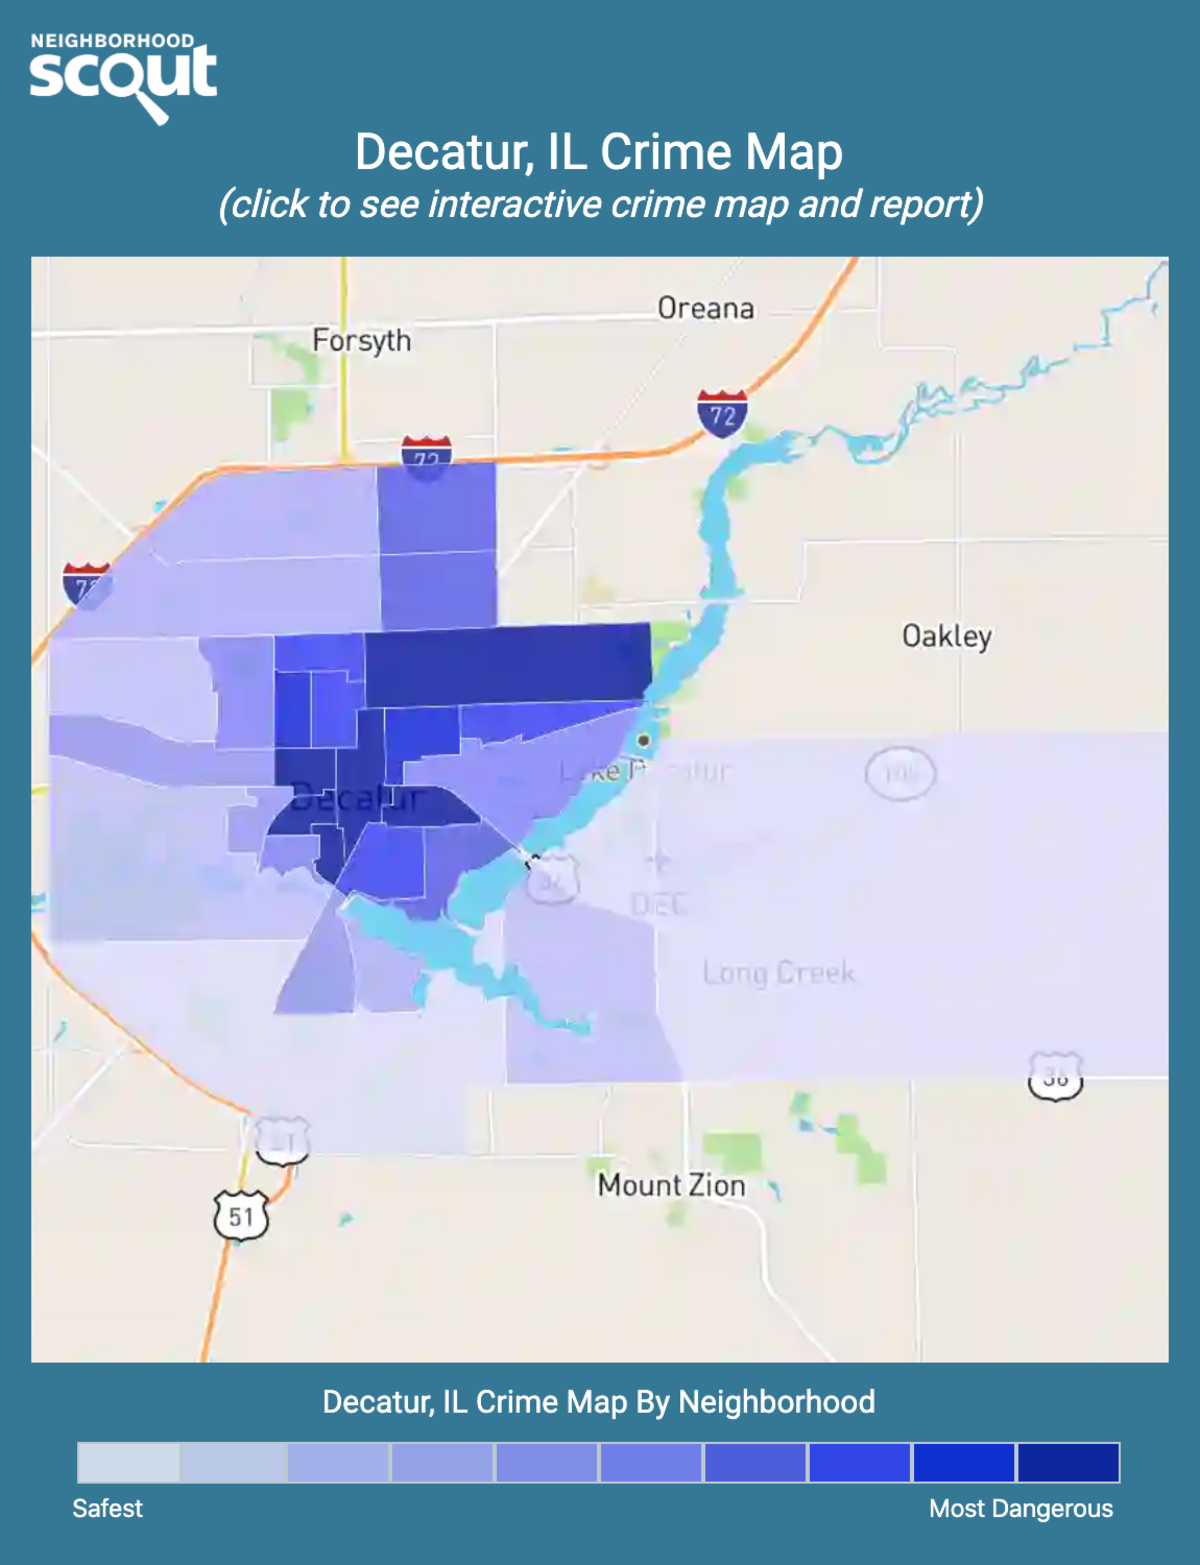 Decatur, Illinois crime map